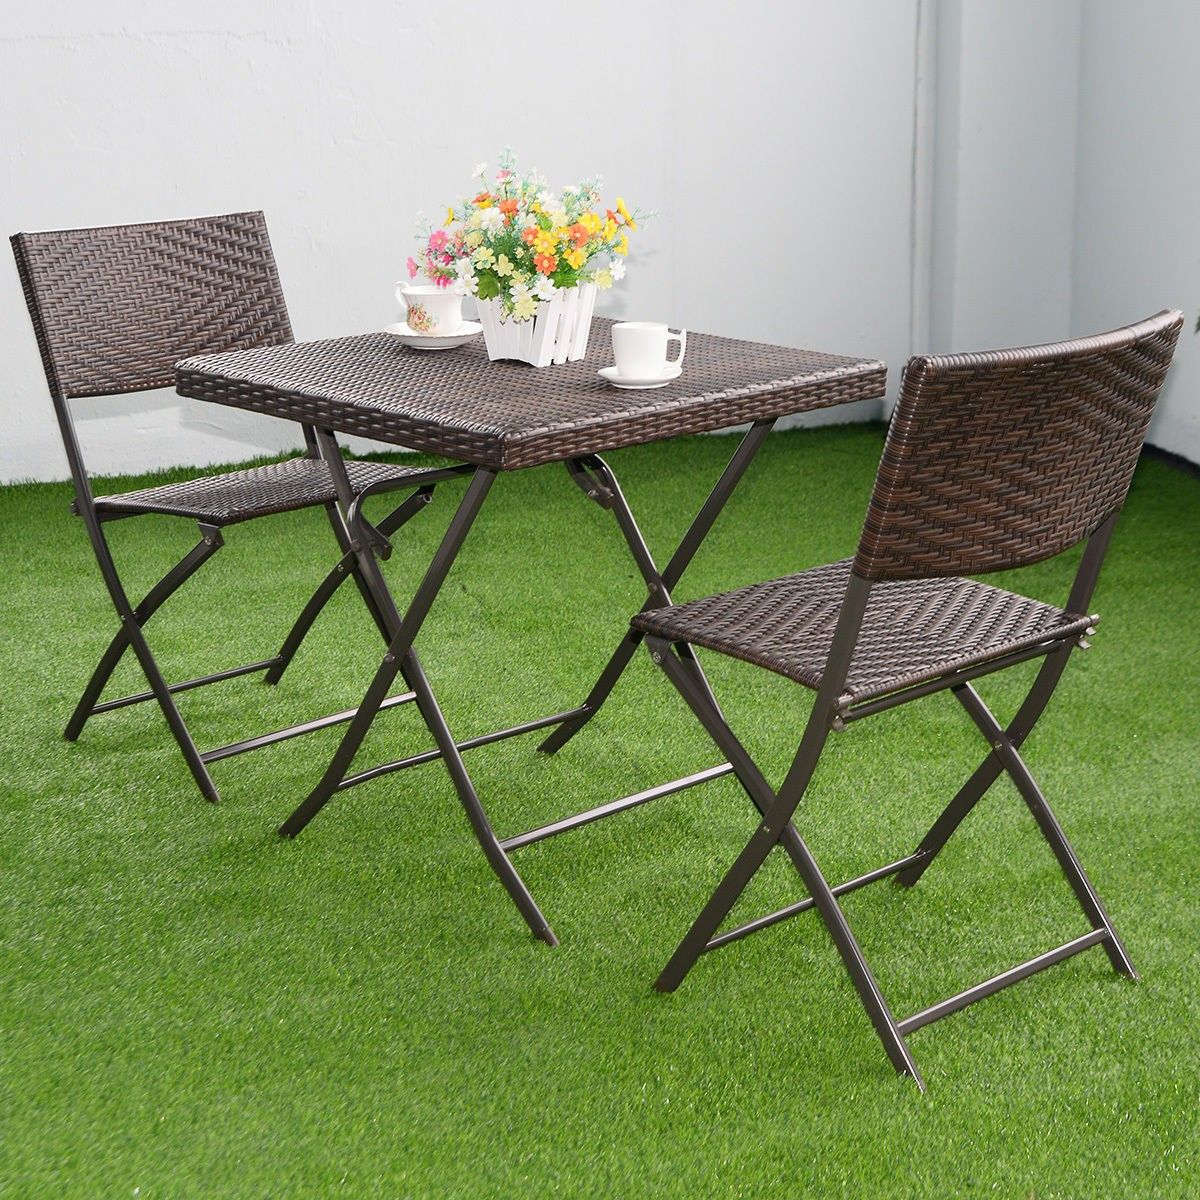 Folding Patio Table And Chair Set. Full Size Of New 5 Piece Folding ...